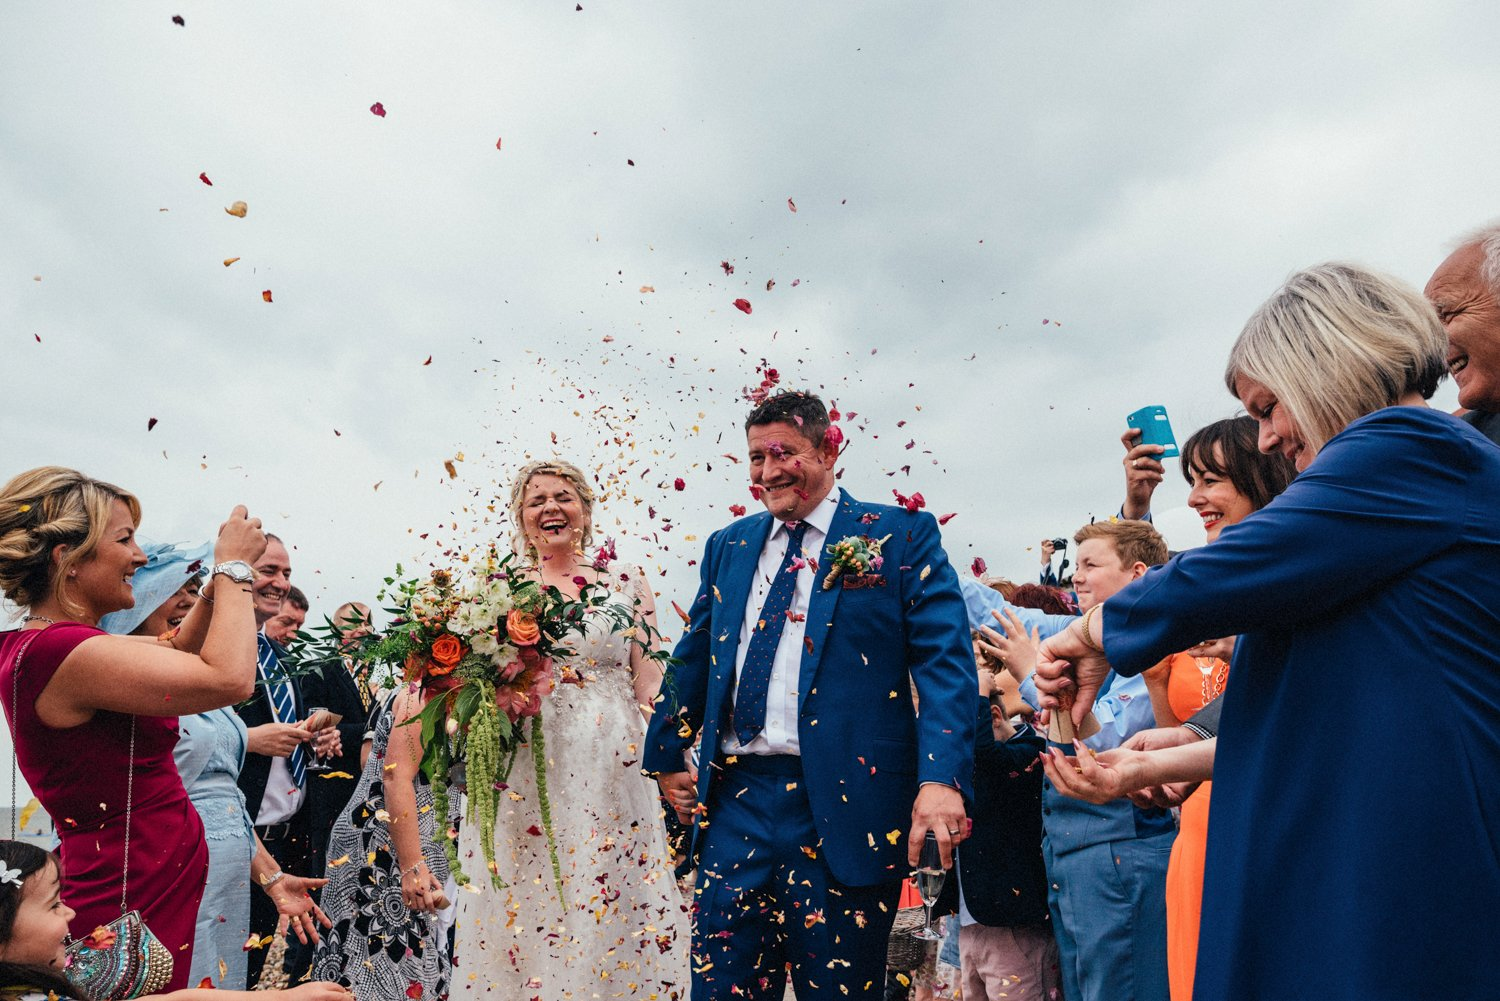 Whitstable wedding confetti shower BABB